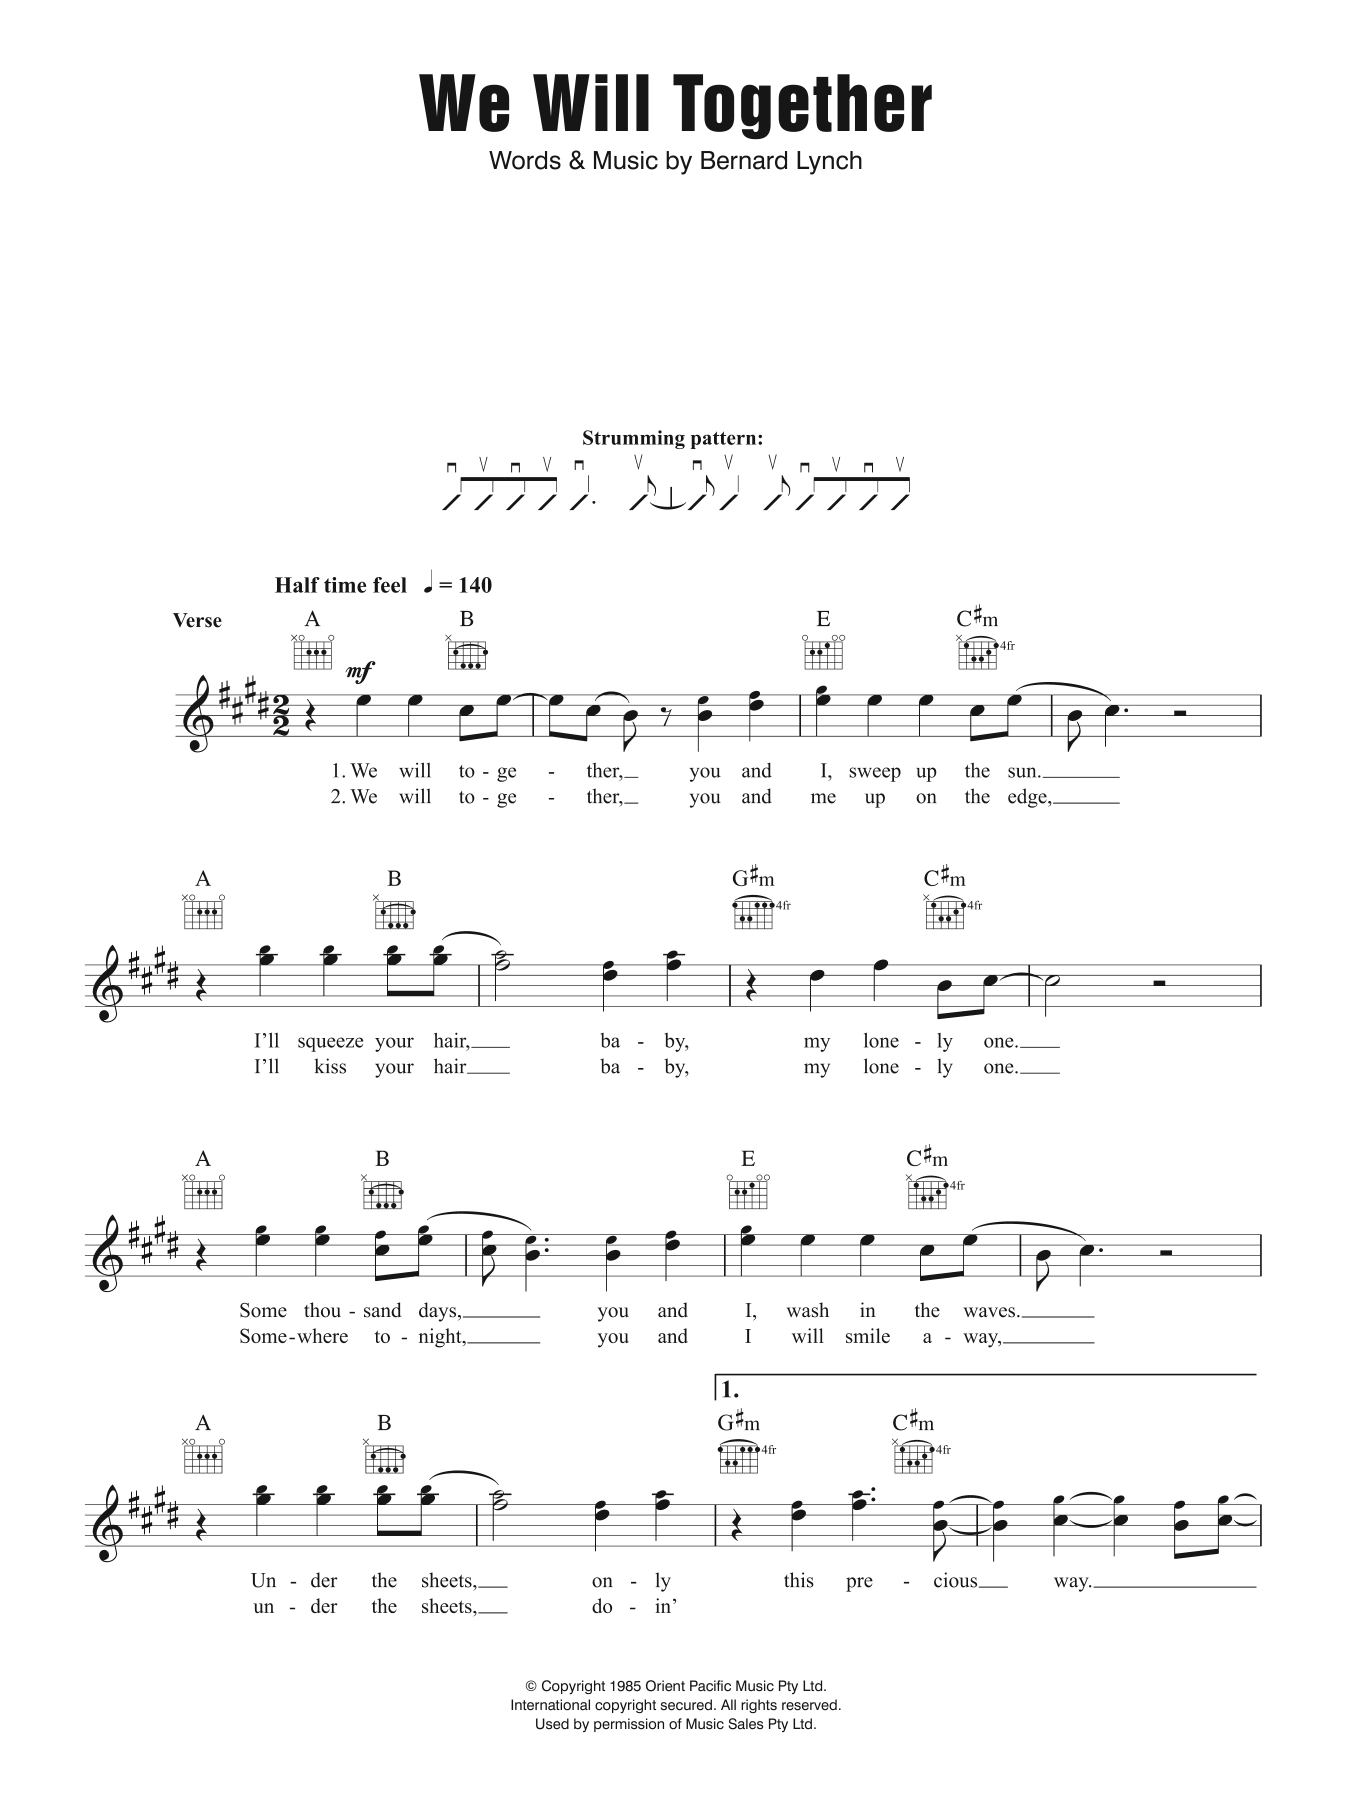 We Will Together Sheet Music